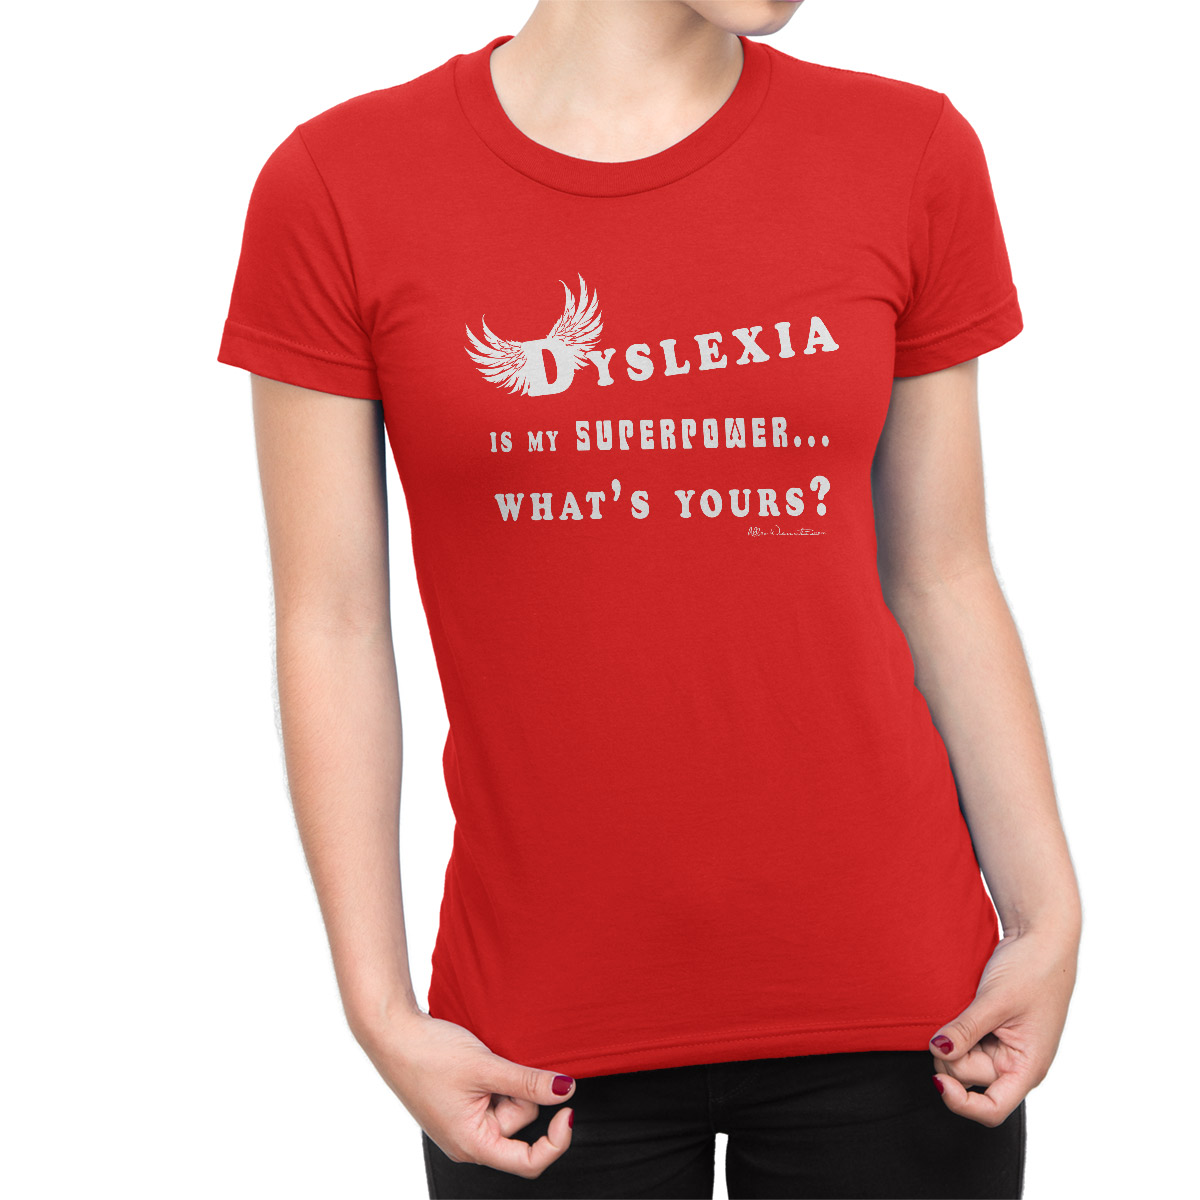 Dyslexia Is My Superpower T-shirt female model